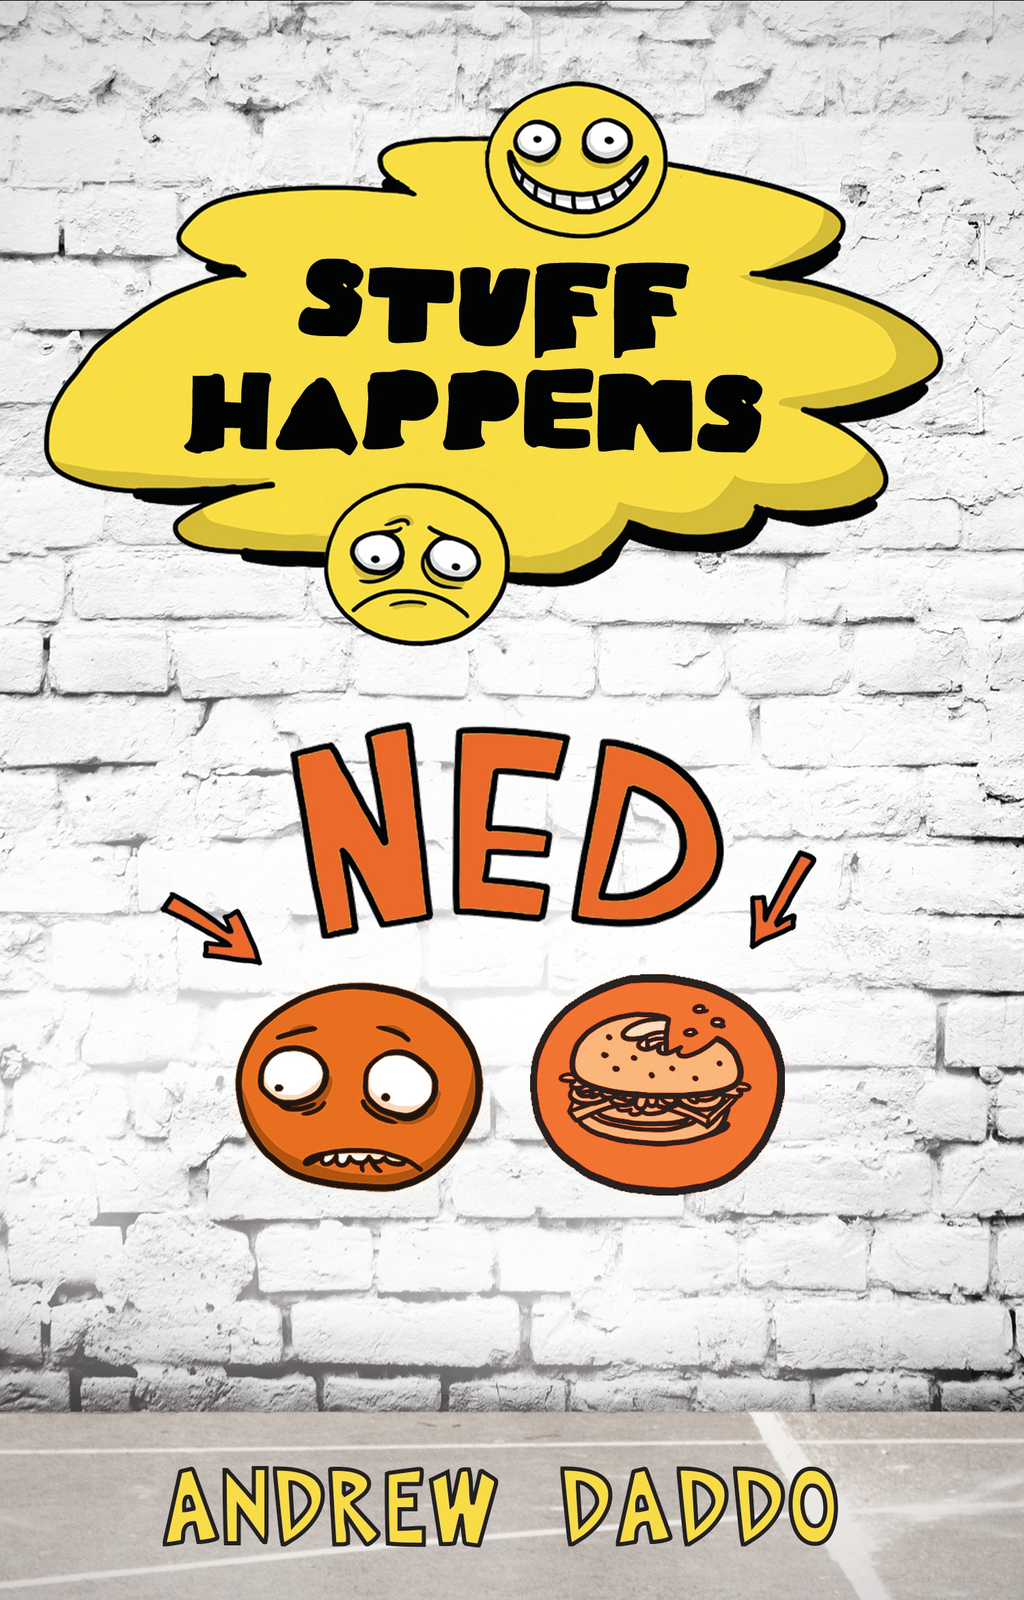 Stuff Happens Ned